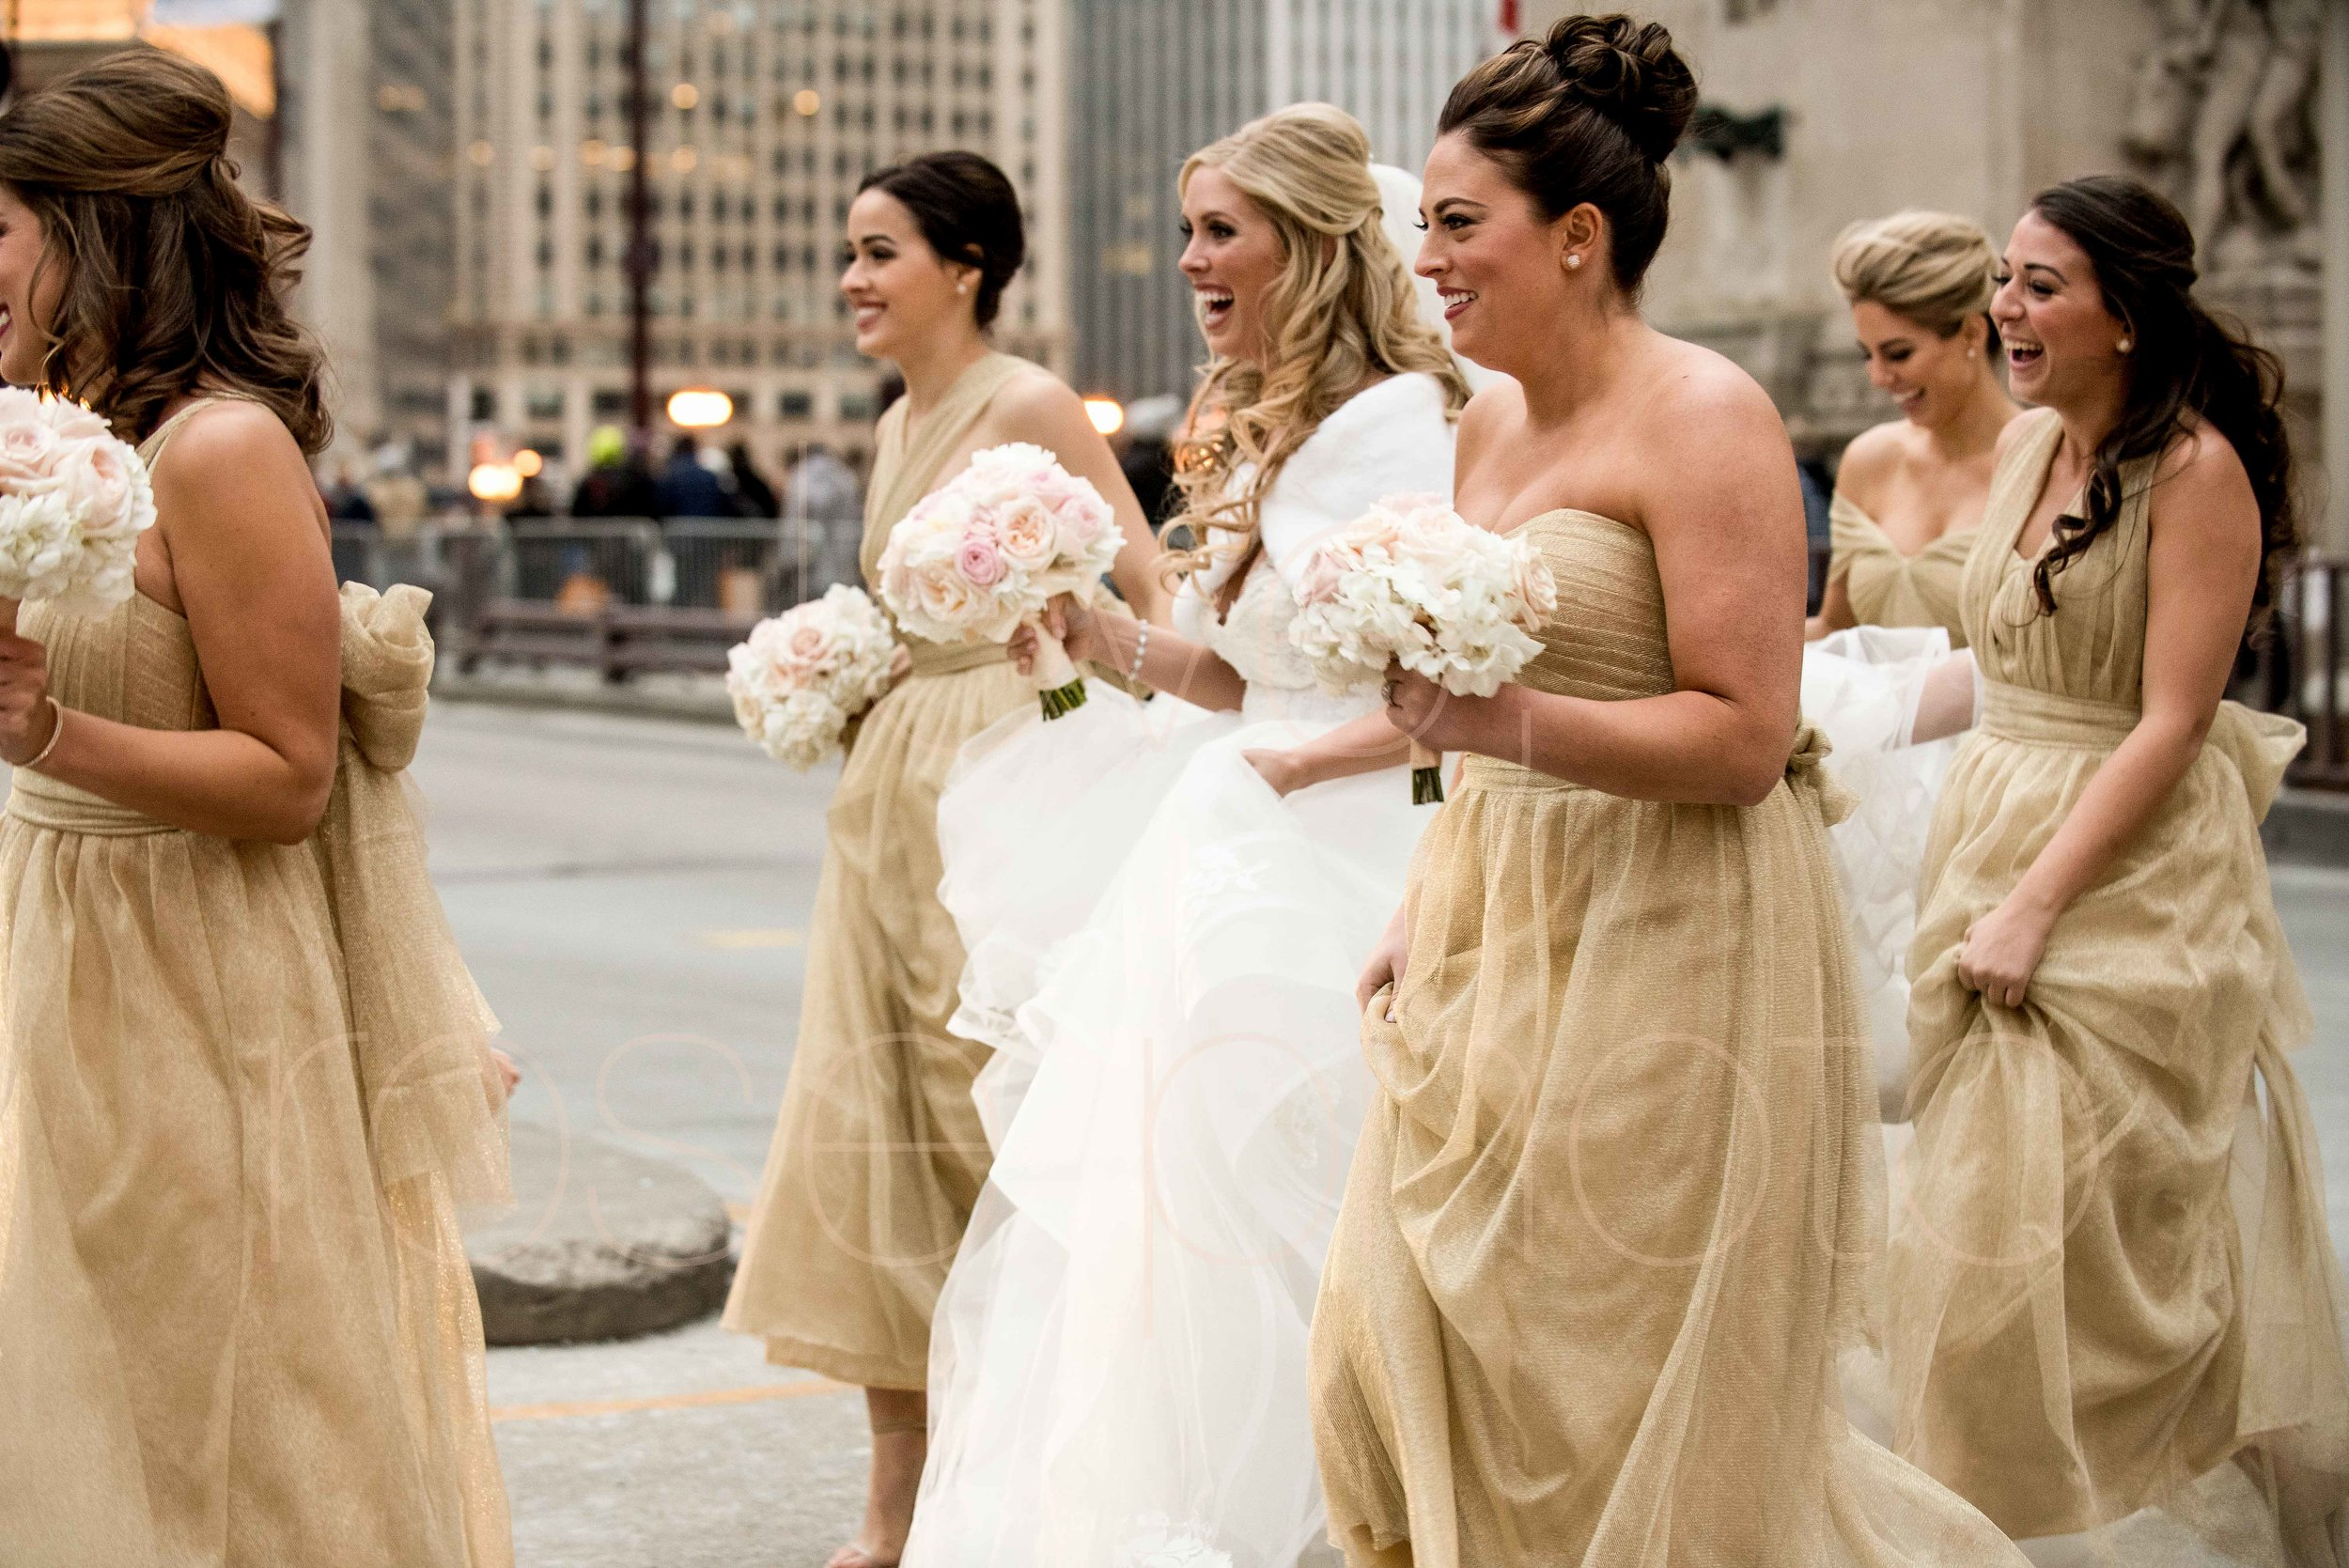 Rose Photo downtown Chicago wedding mag mile new years eve best wedding photography-32.jpg